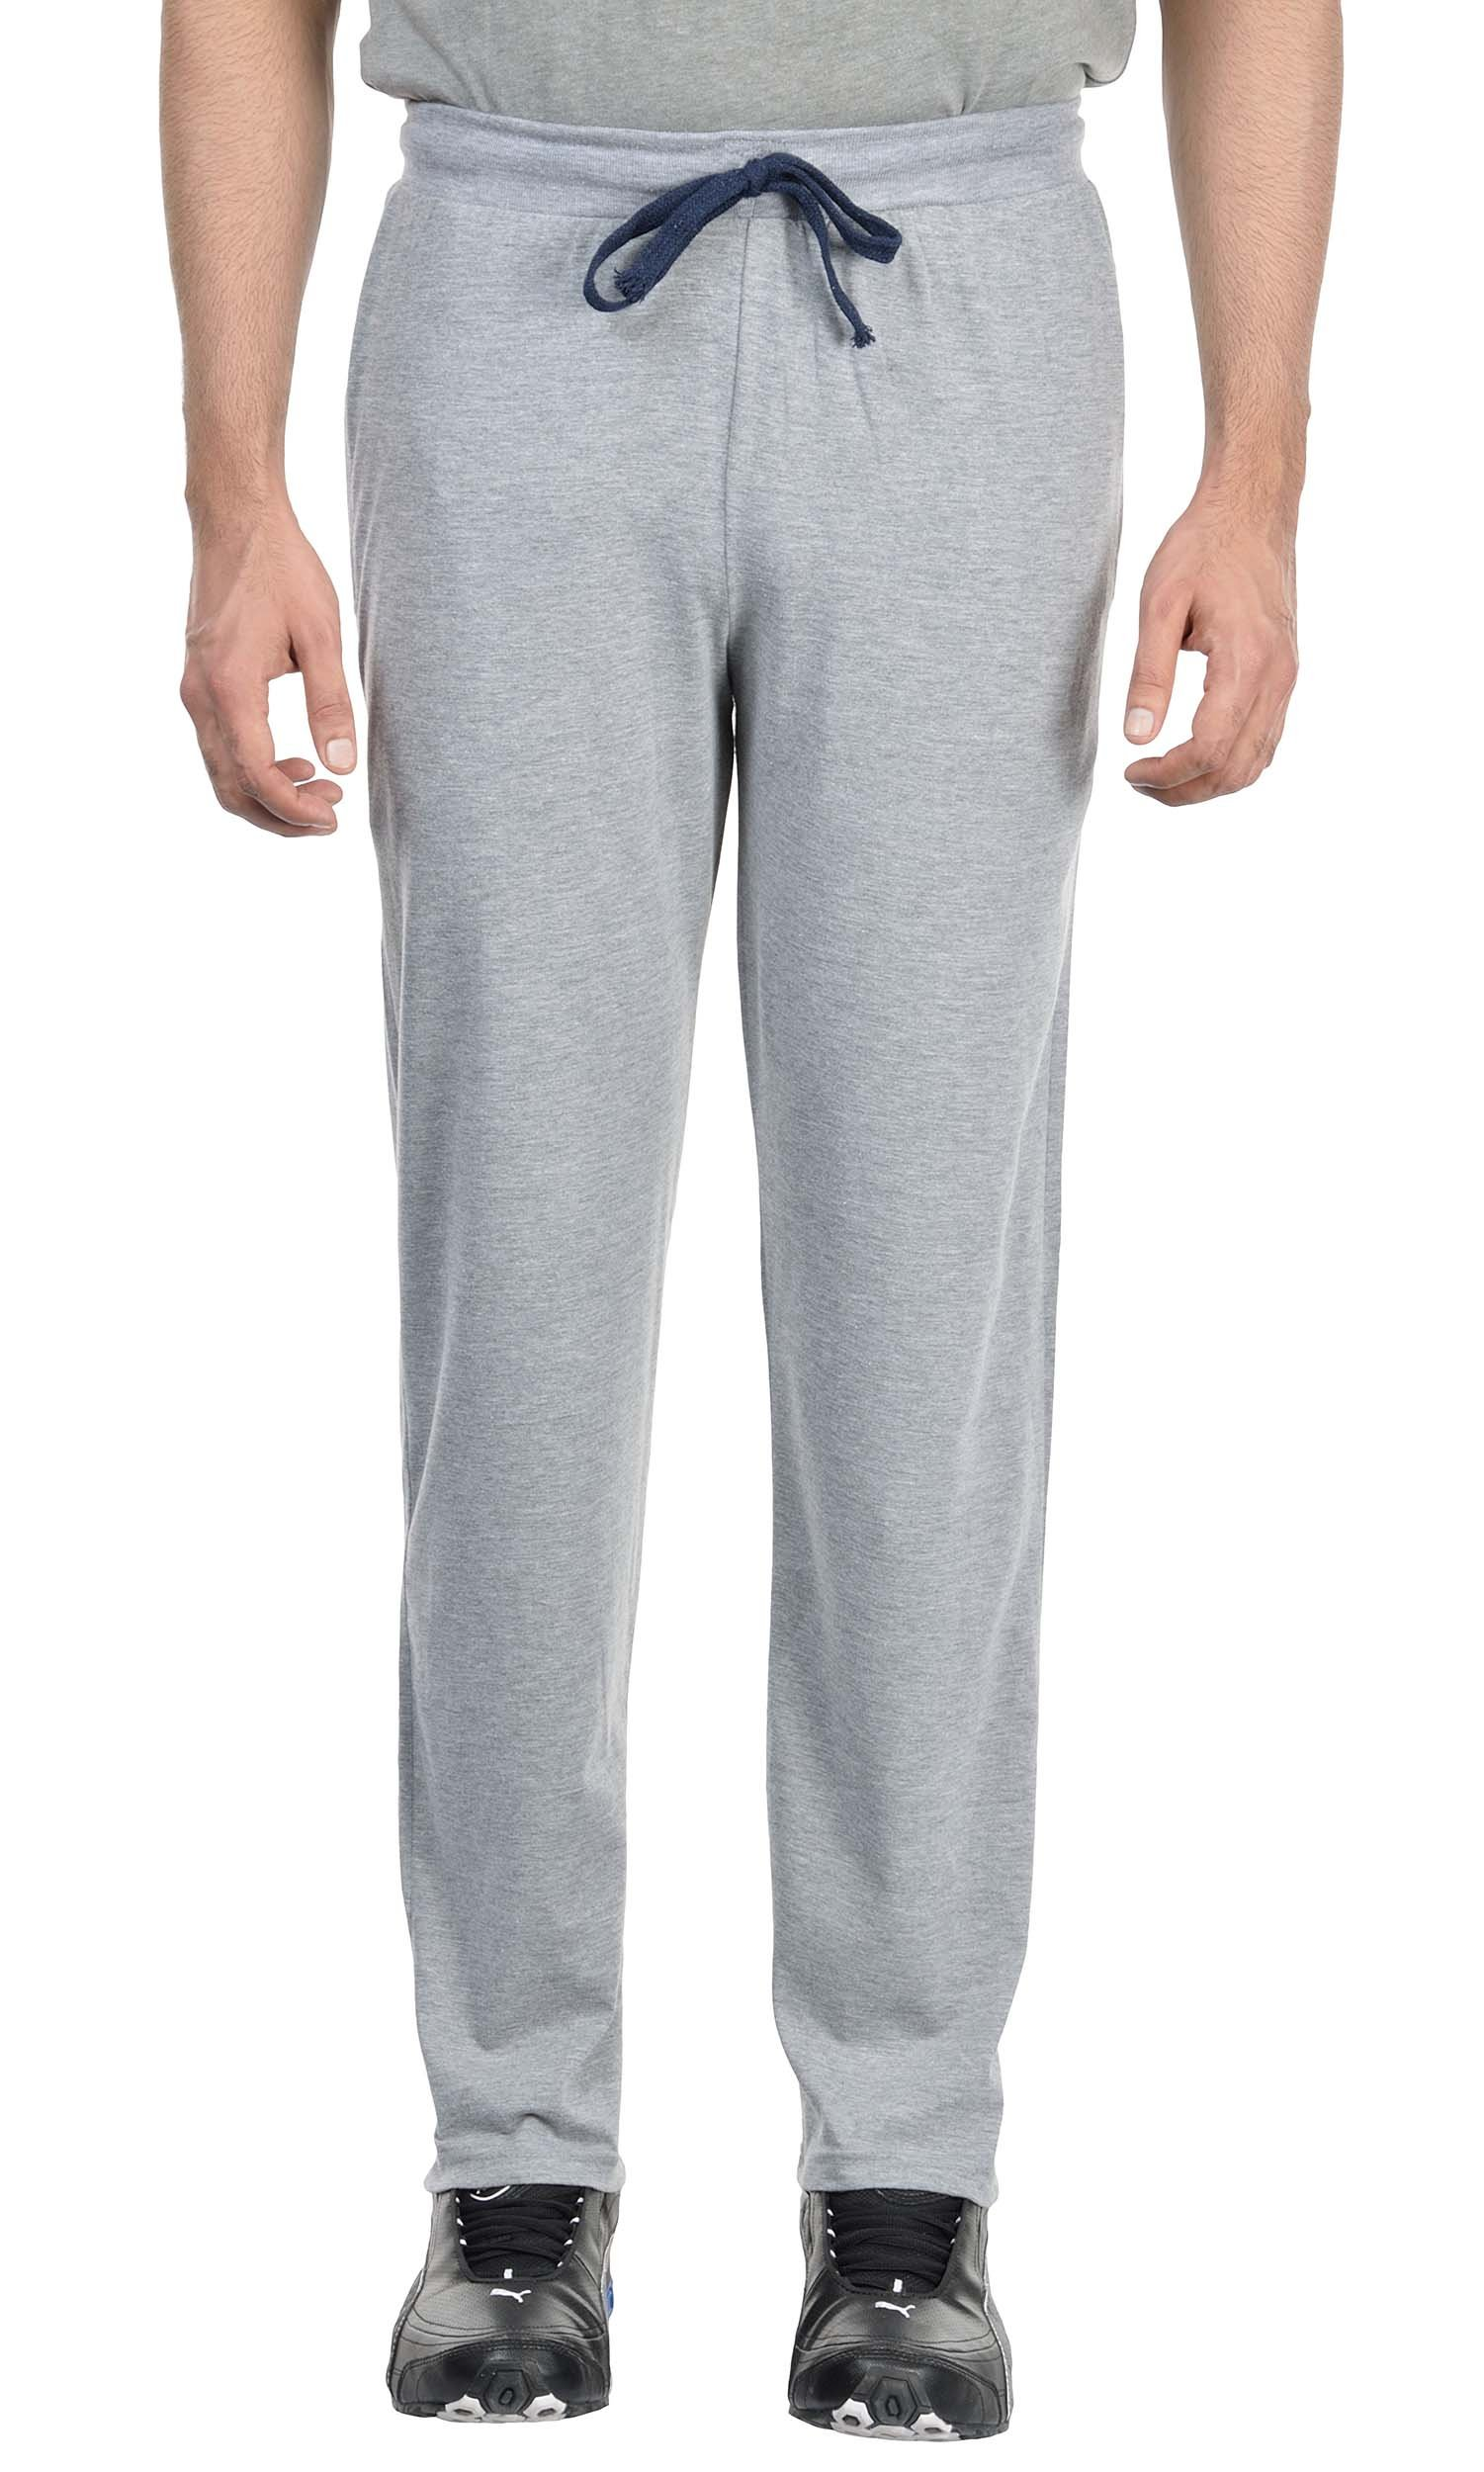 DFH Men's Cotton Track Pants (Minimum 50% OFF)